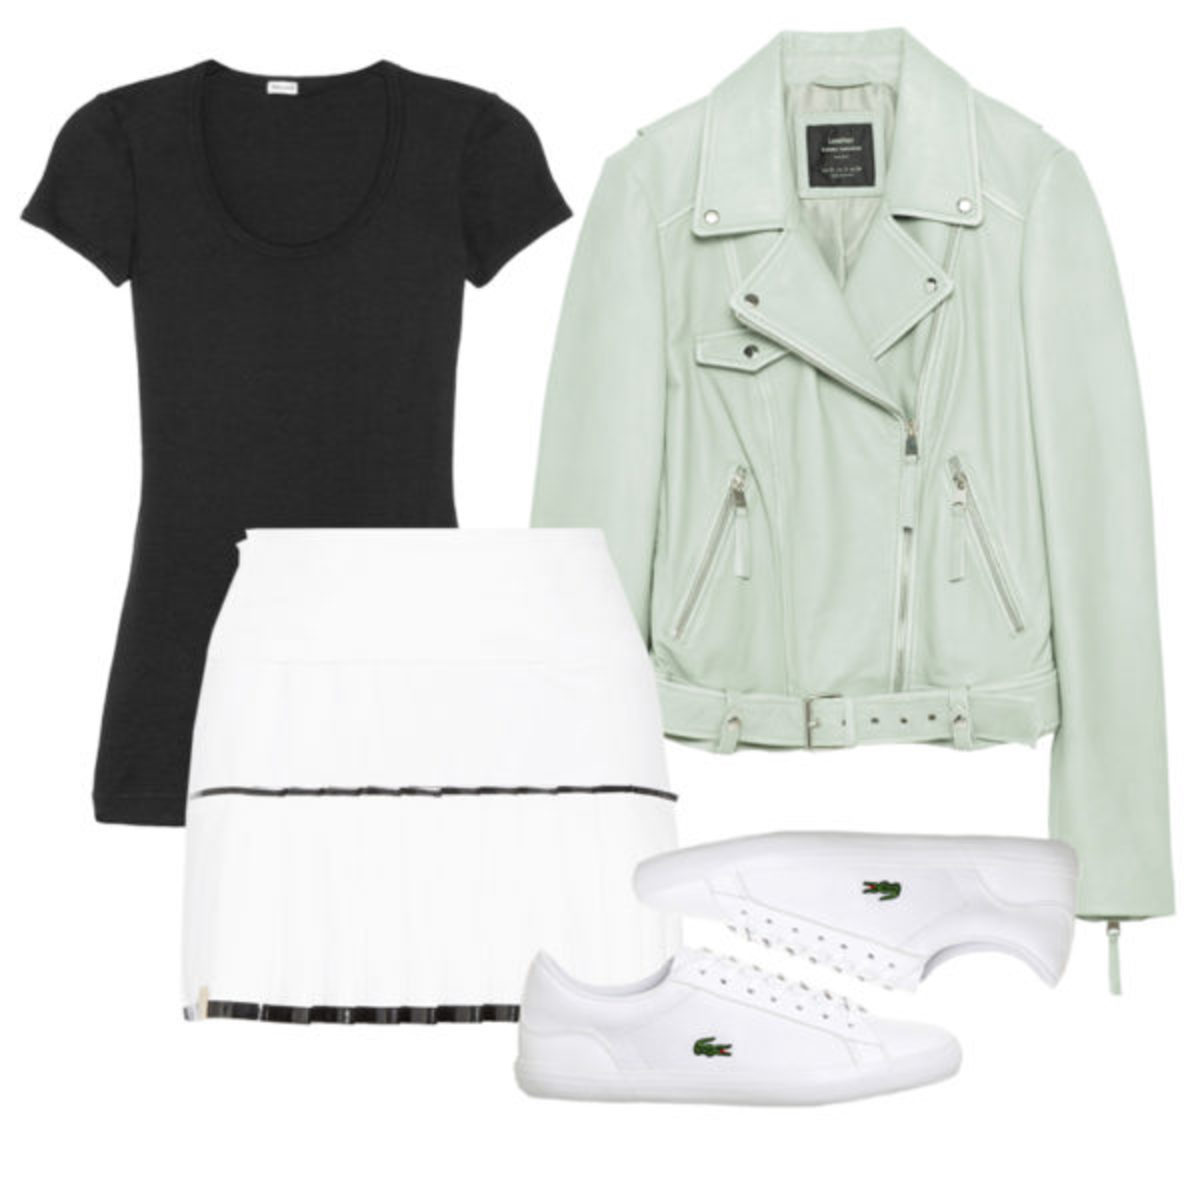 Comfy-Outfits-Look-1-600x600